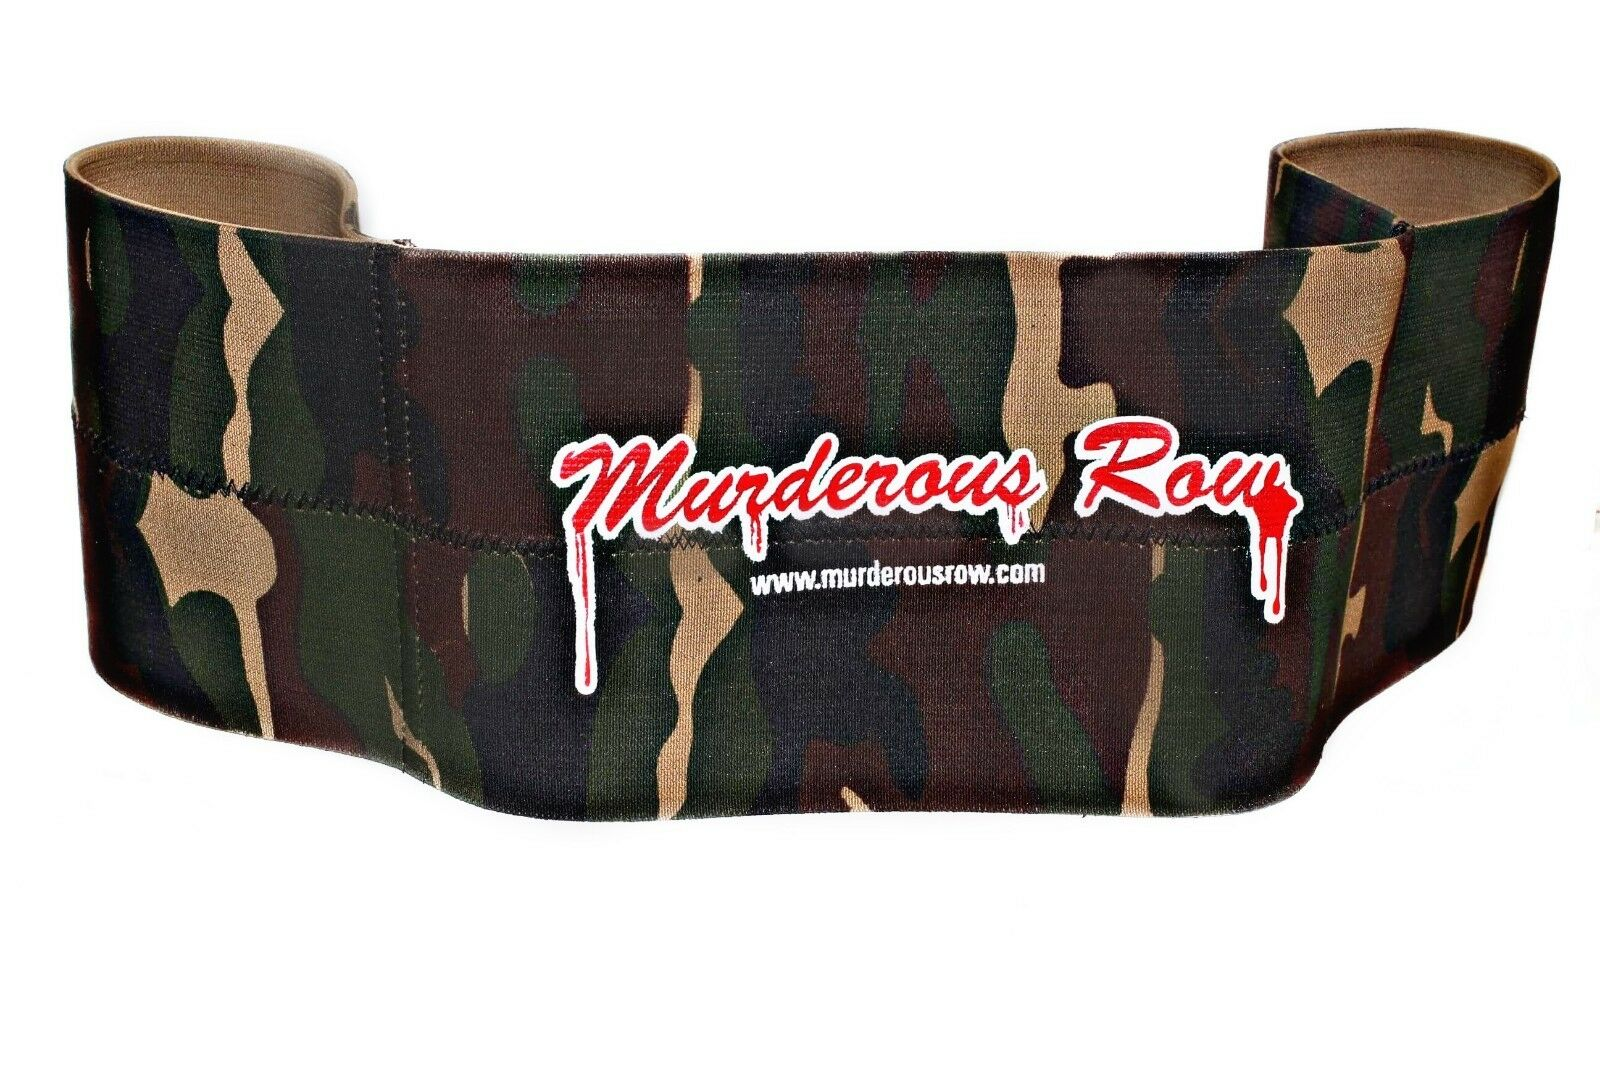 MURDEROUS ROW Bench Press Sling Shot (XL)- DESERT STORM  CAMO LIMITED EDITION  incentive promotionals